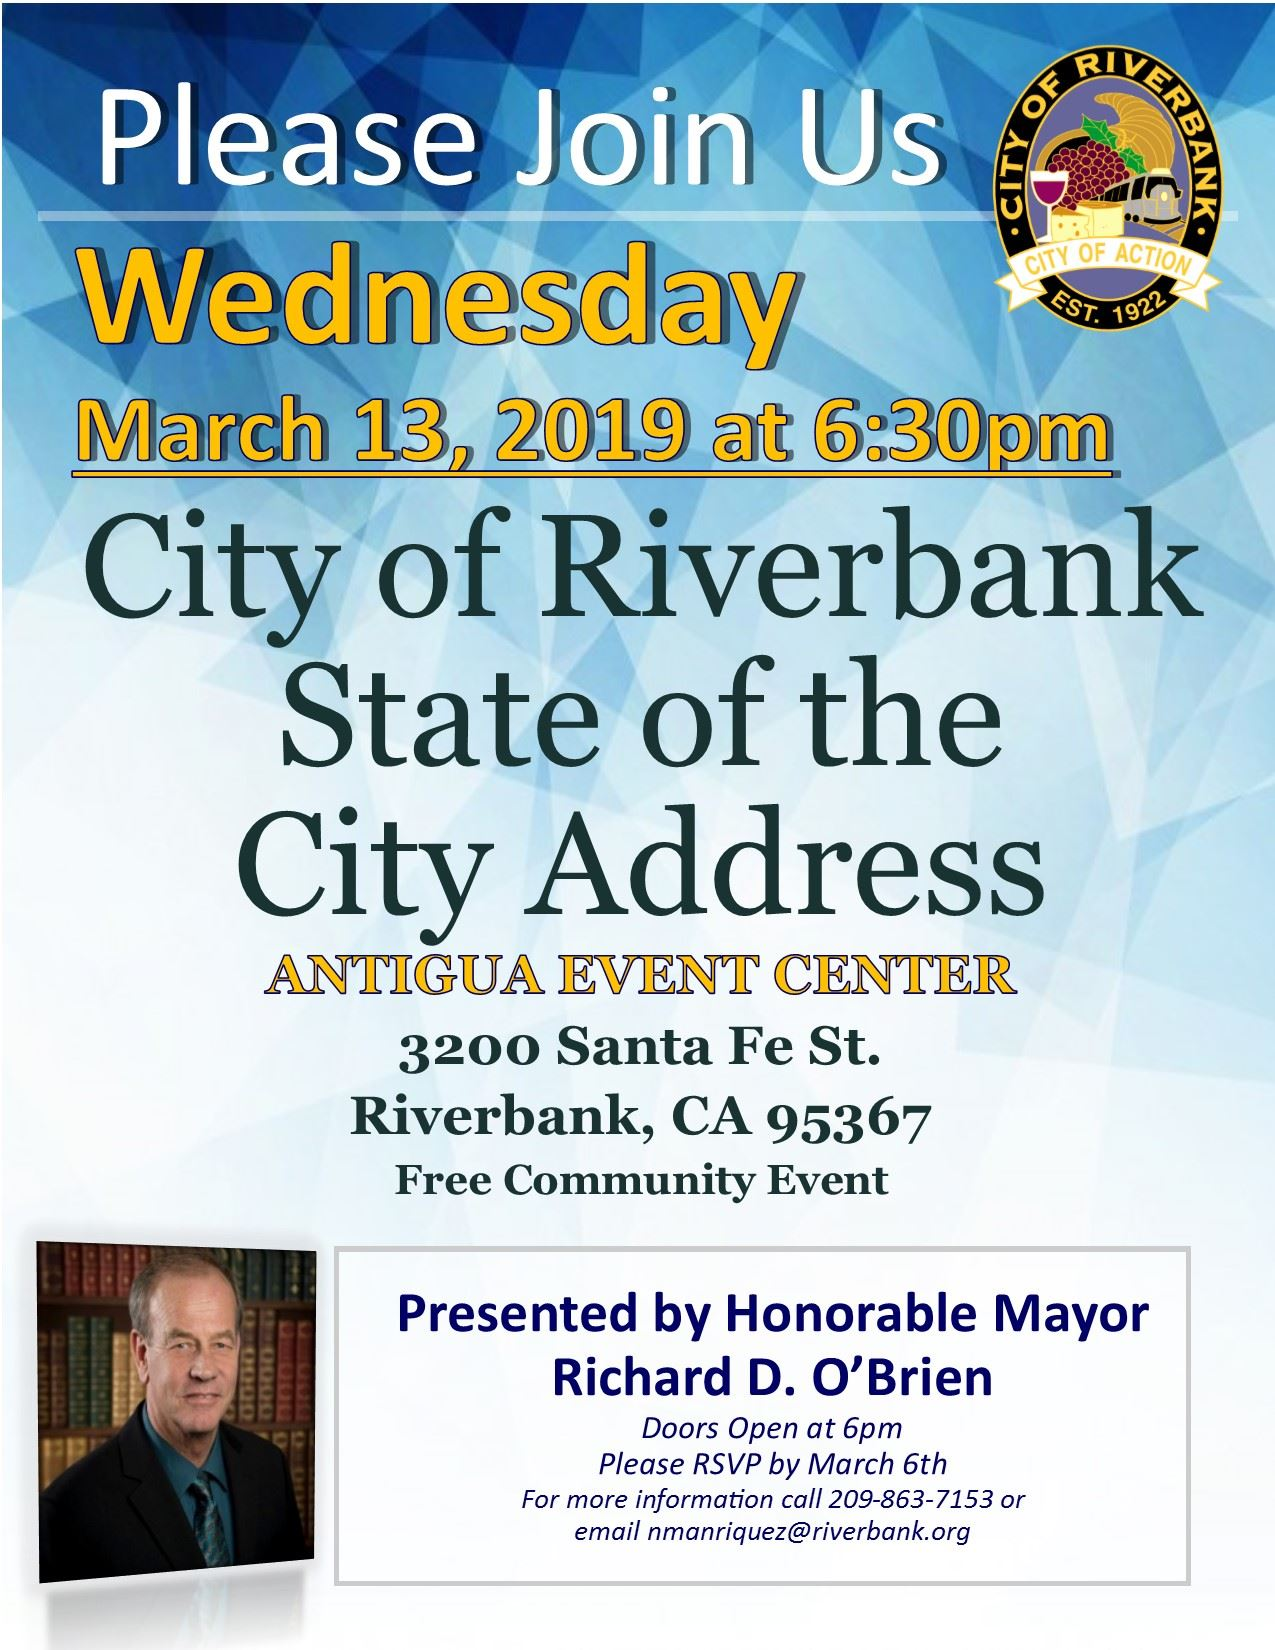 2019 Riverbank State of the City Address Flyer